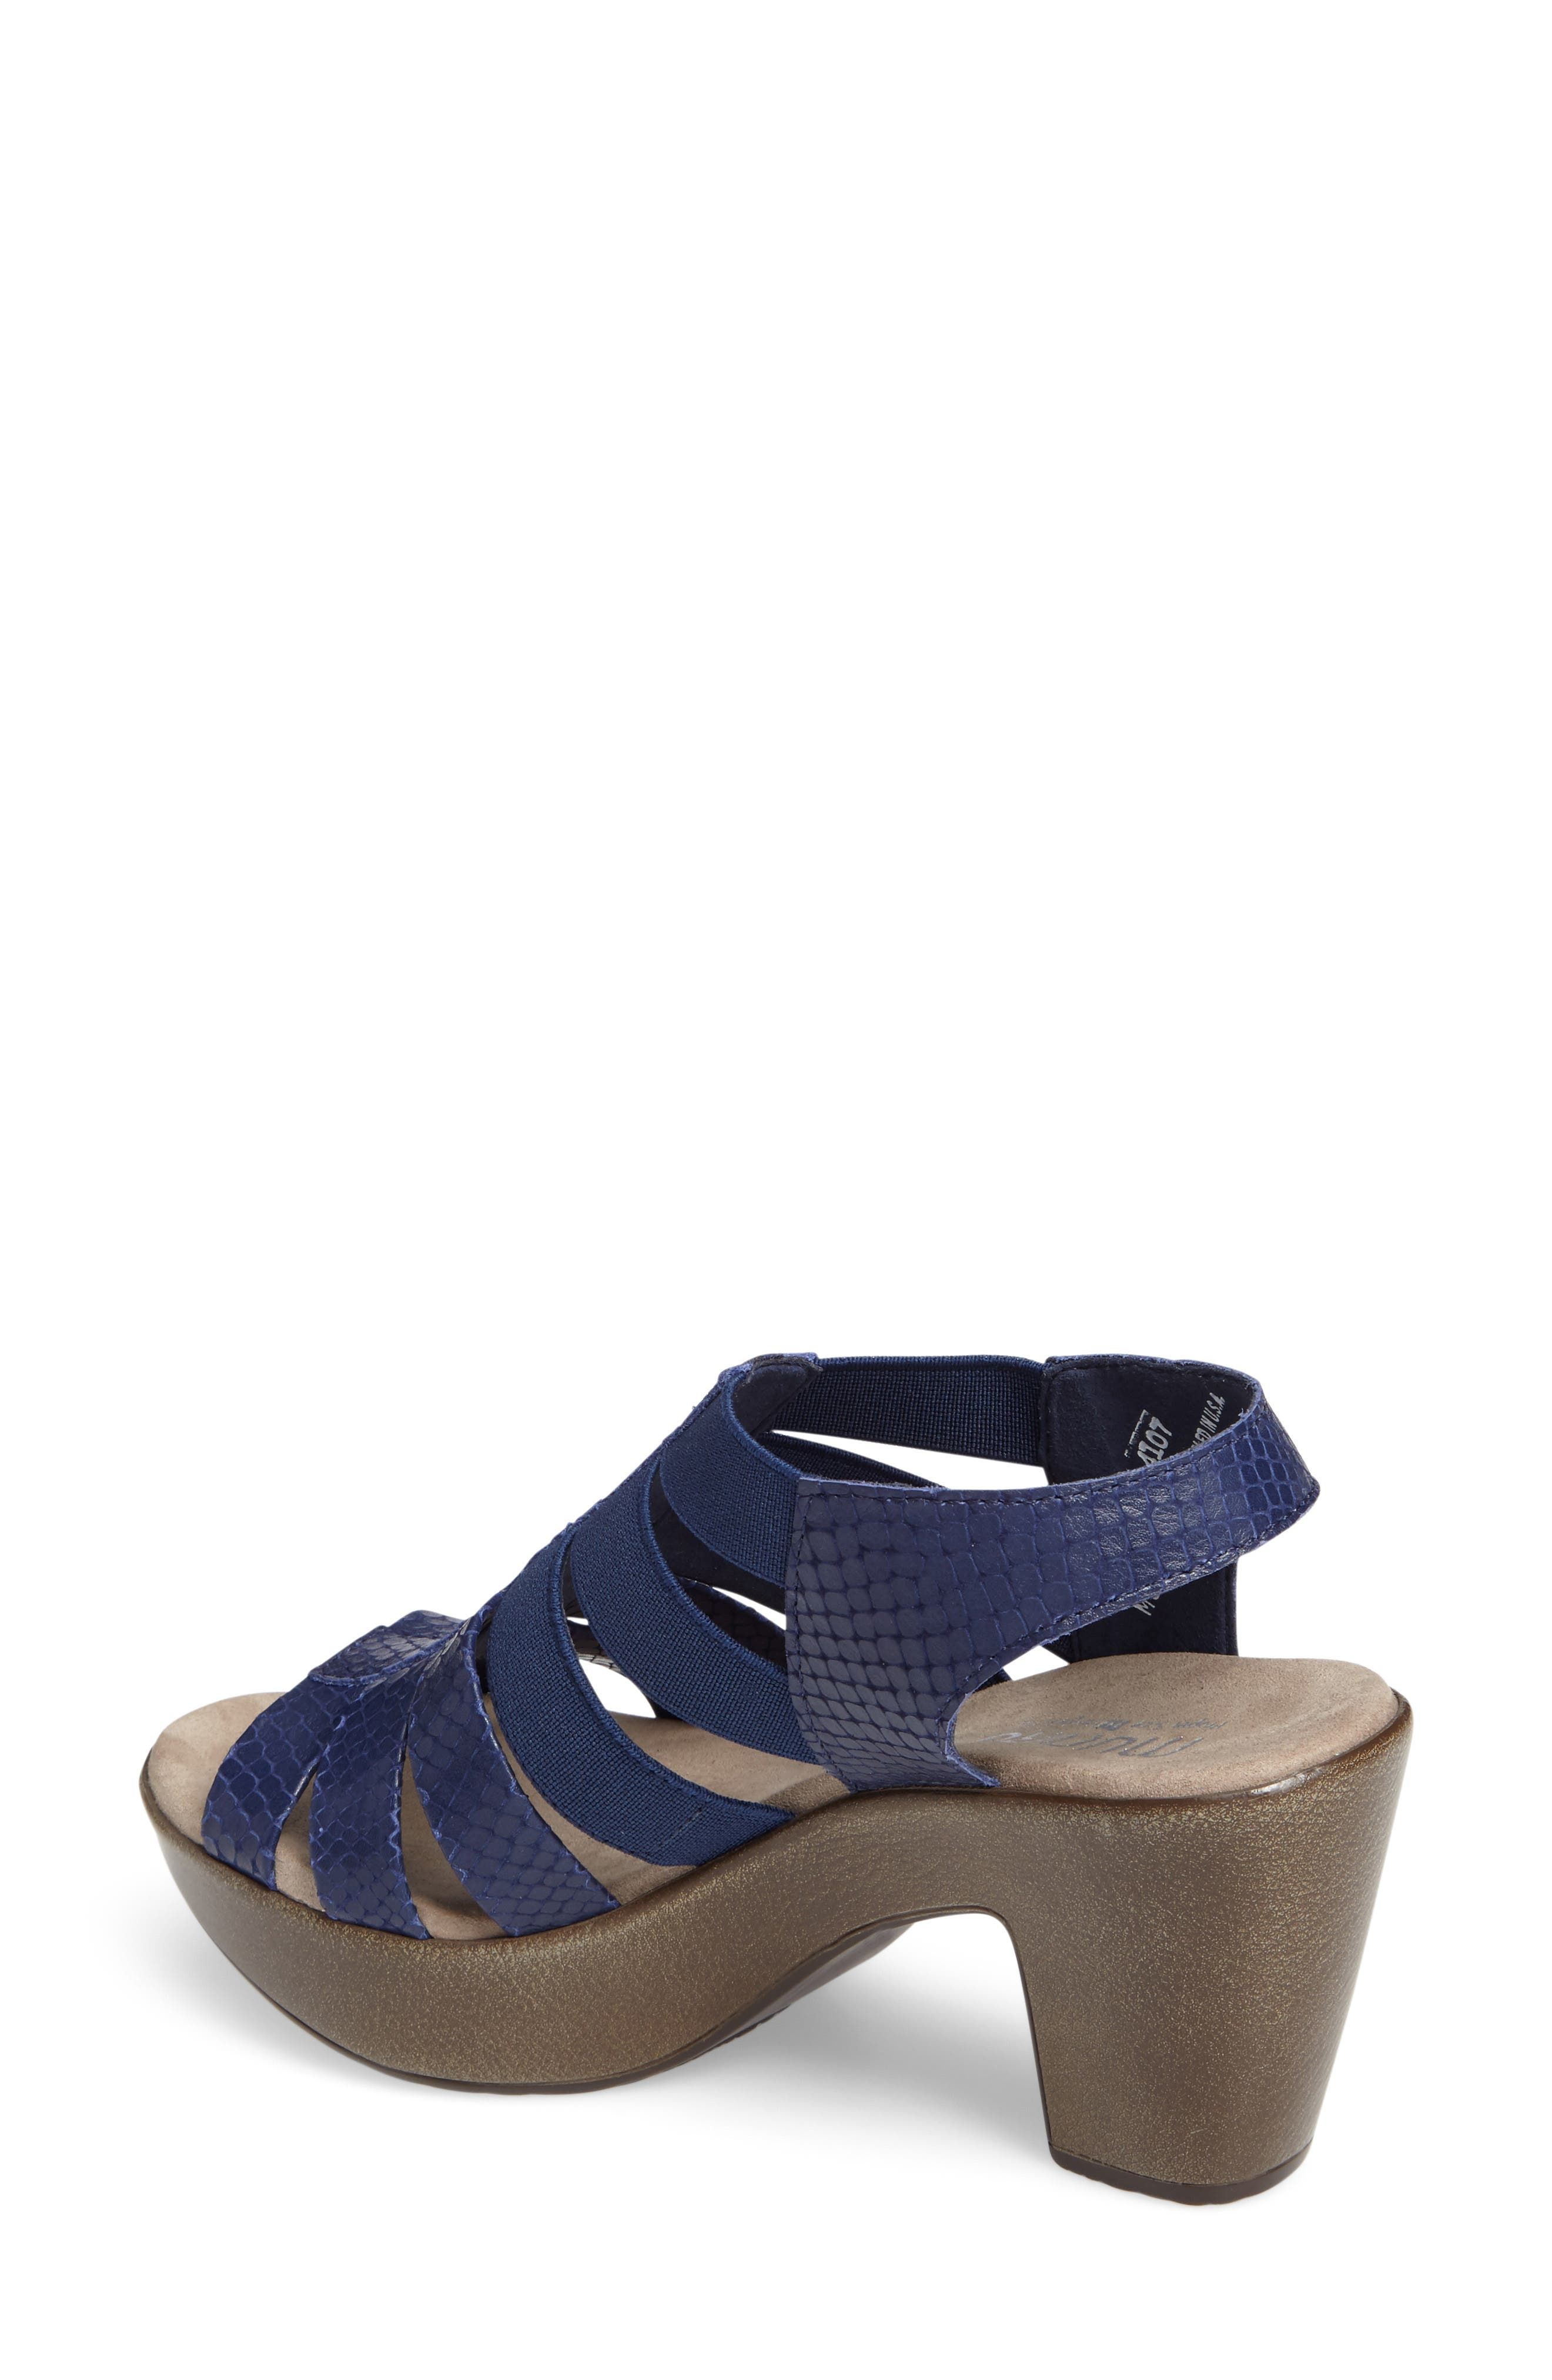 'Cookie' Slingback Sandal,                             Alternate thumbnail 2, color,                             Blue Leather